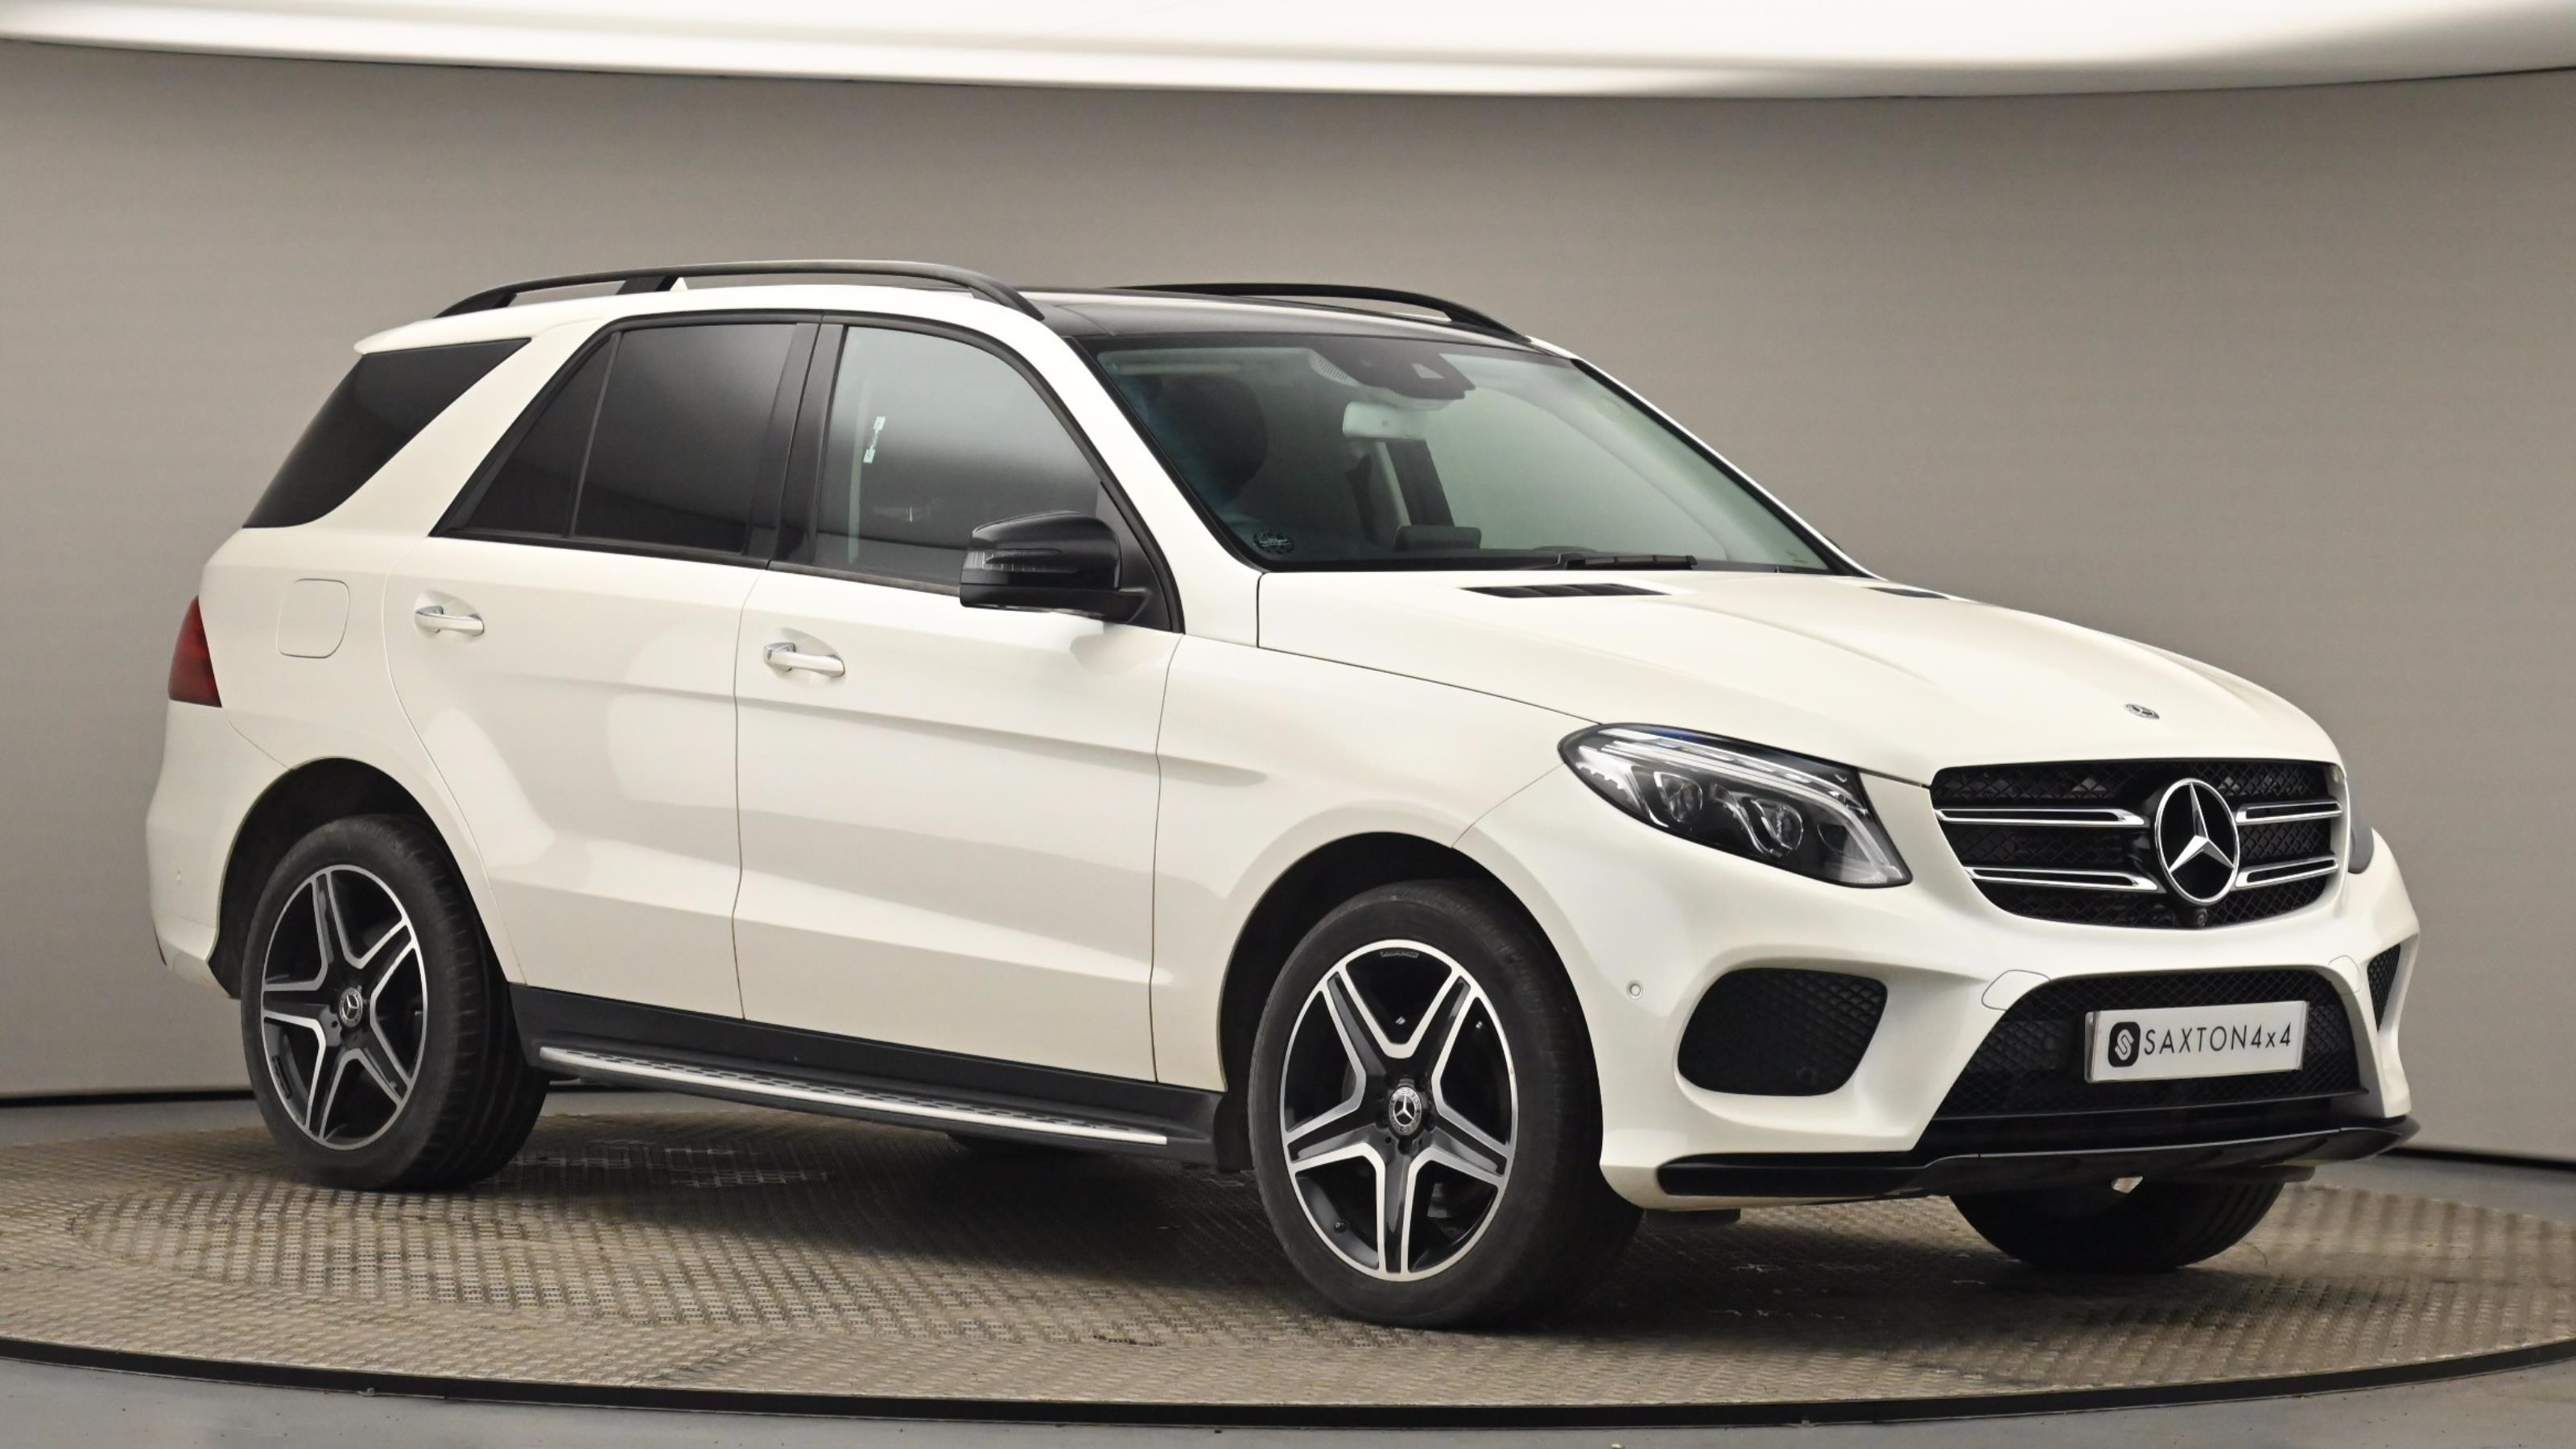 Used 2017 Mercedes-Benz GLE GLE 250d 4Matic AMG Line Prem Plus 5dr 9G-Tronic WHITE at Saxton4x4